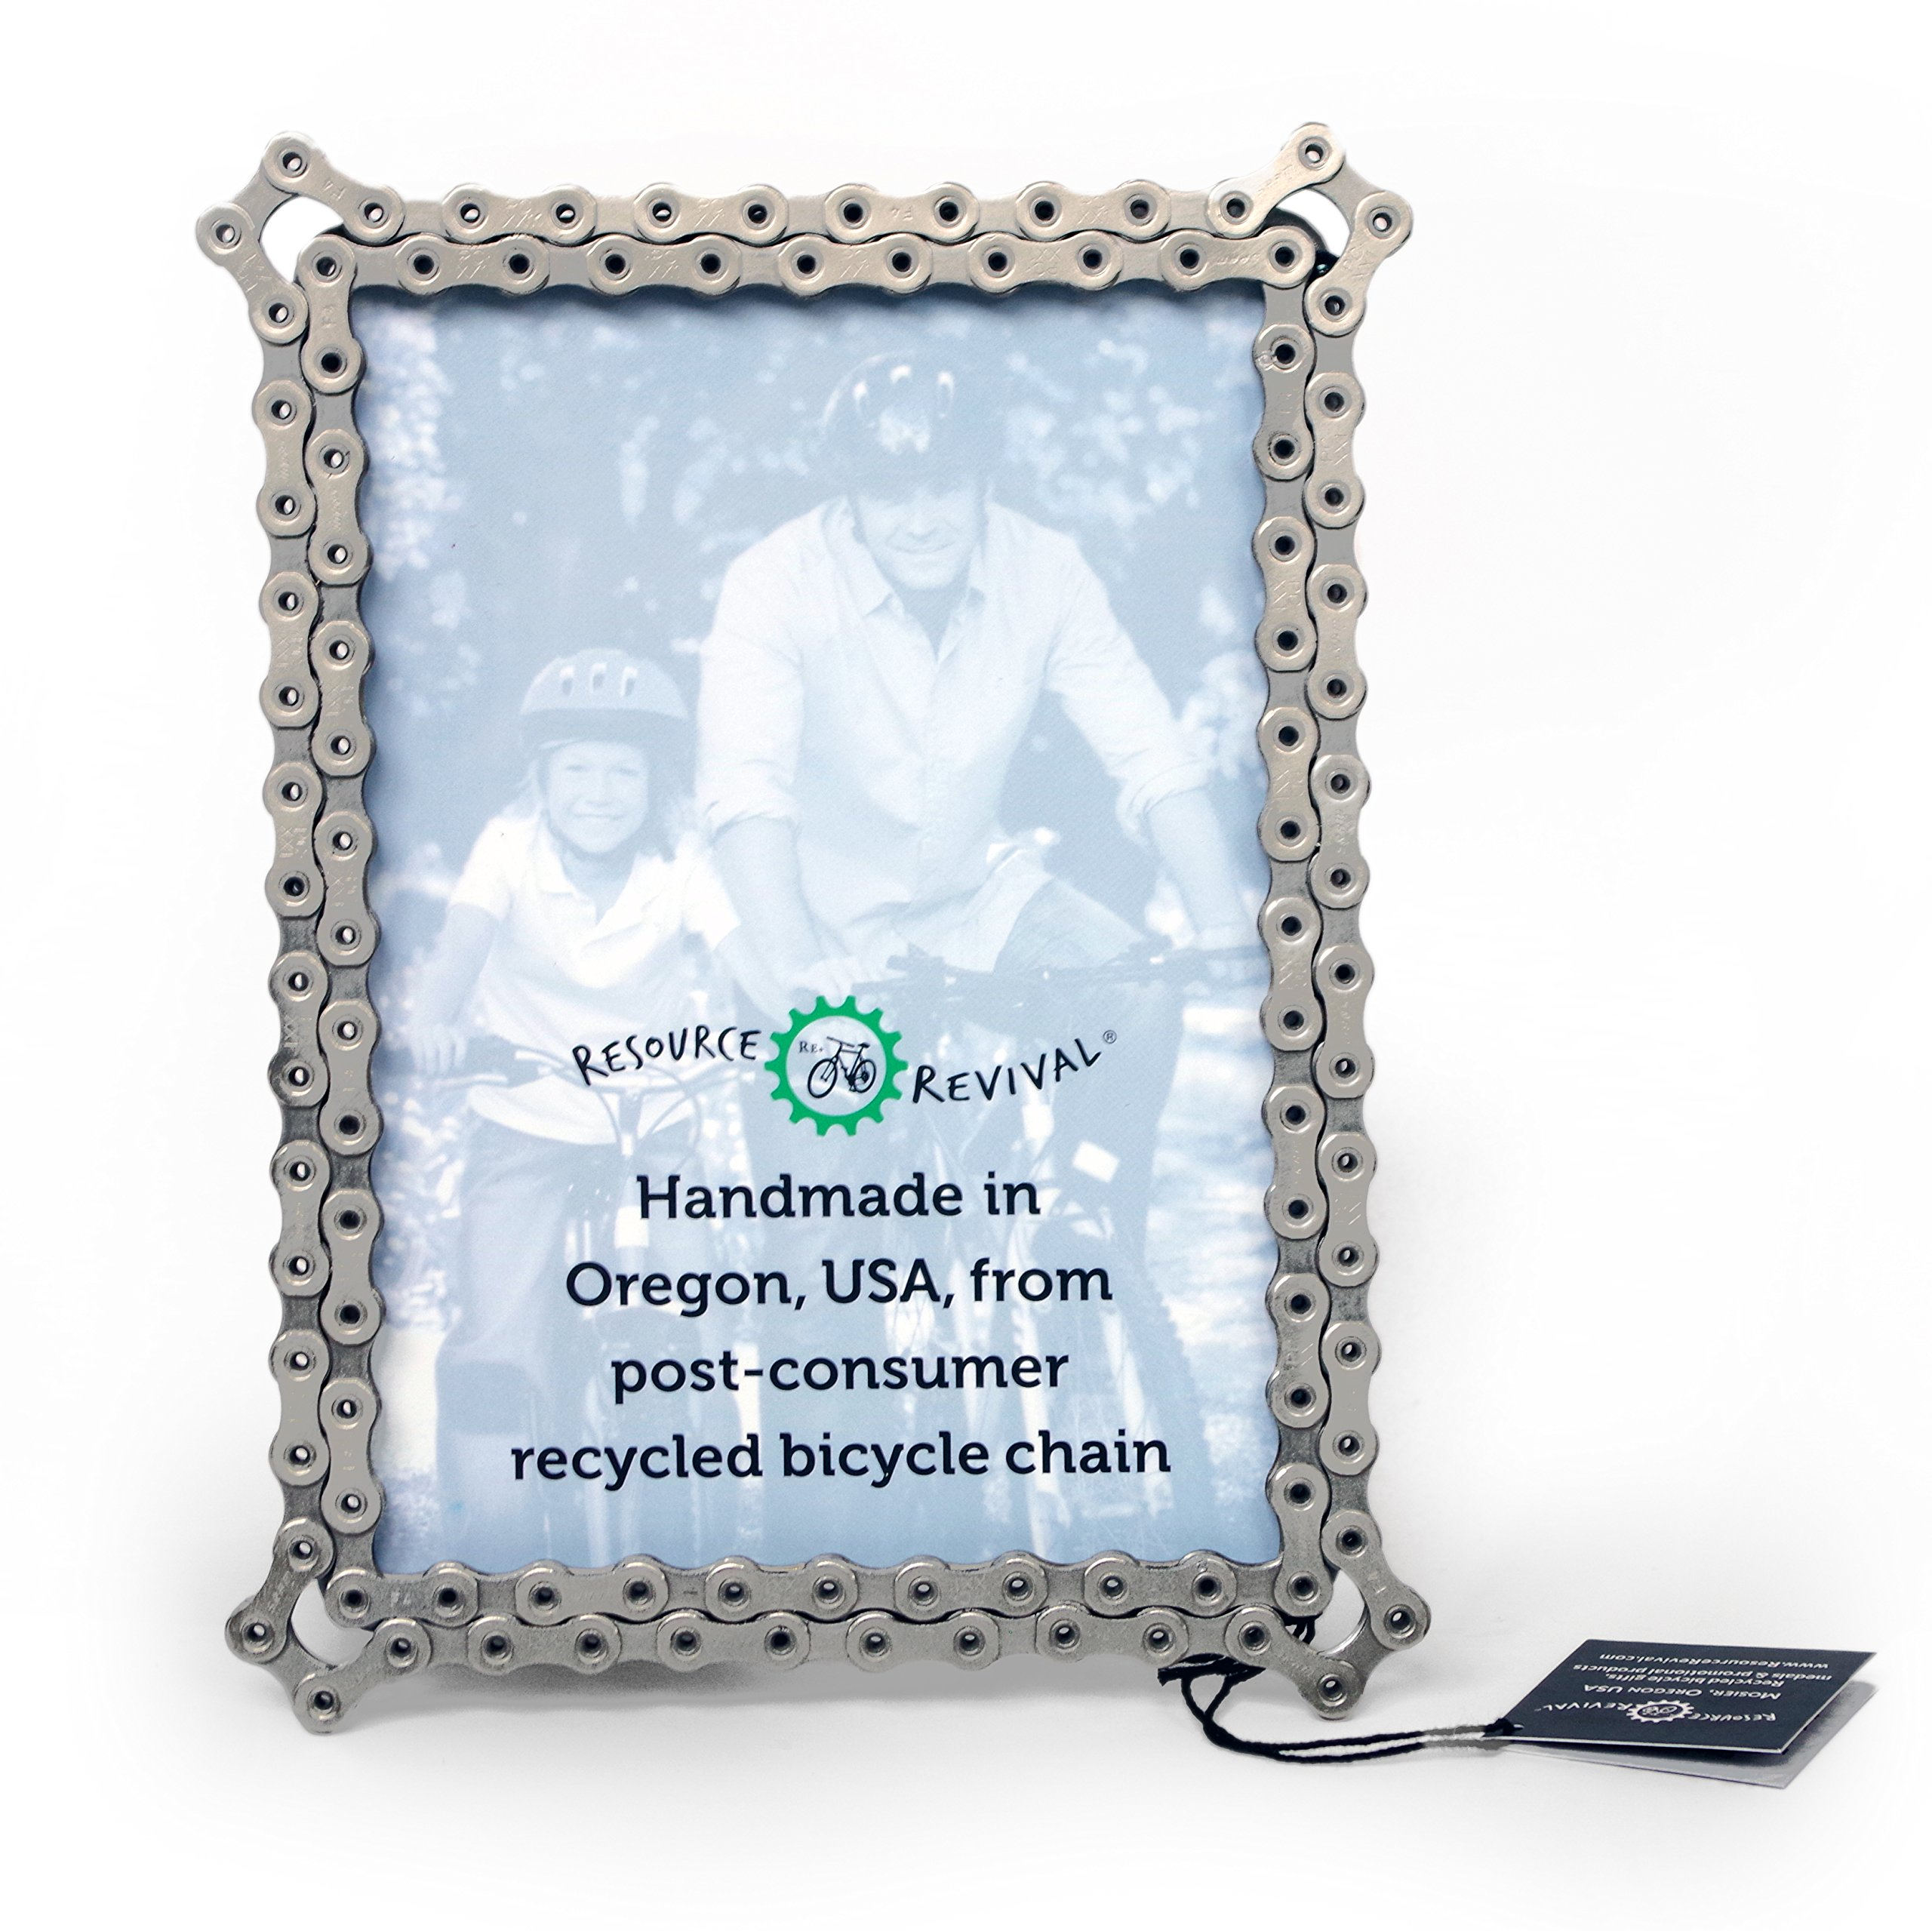 Recycled Bicycle Photo holder 5x7 Created for the Adventurer Bike Chain Picture Frame by Resource Revival